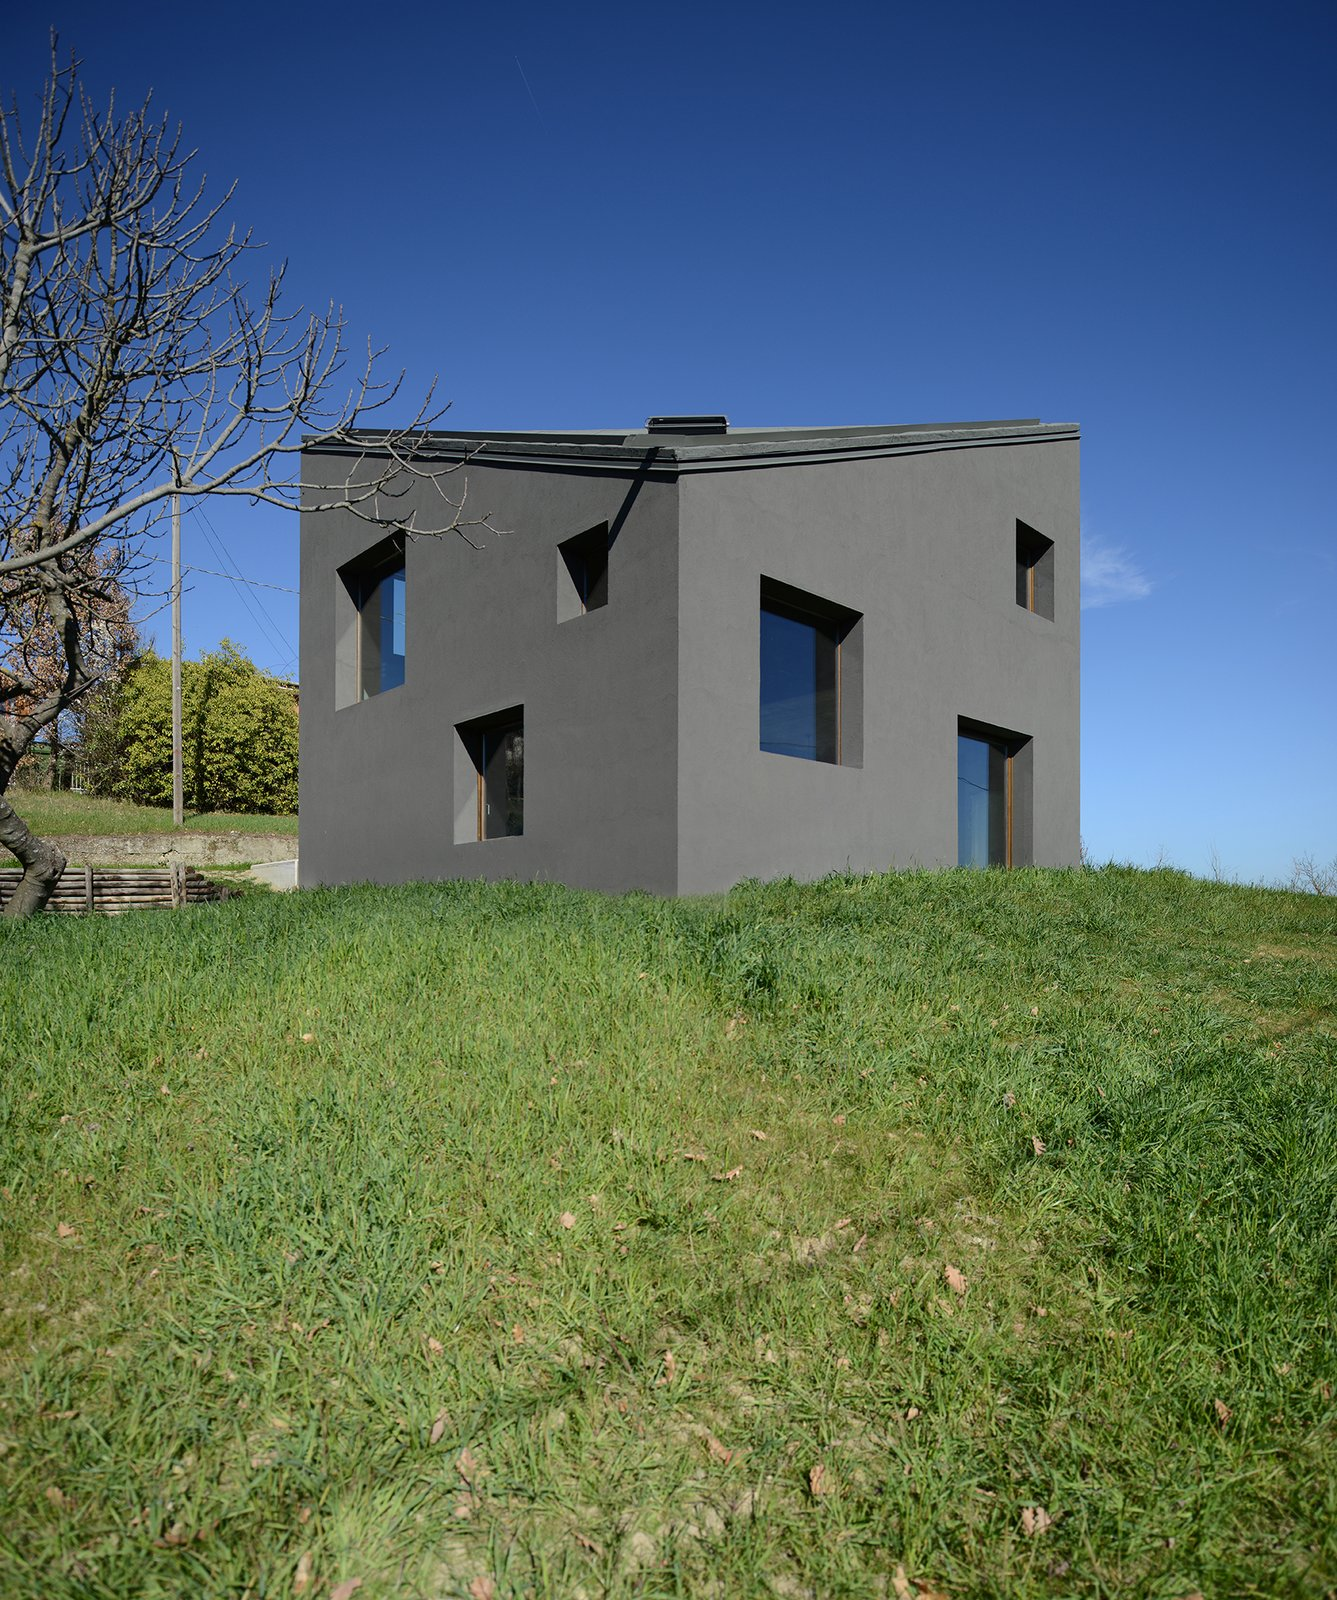 Outdoor, Vegetables, Gardens, Grass, Trees, and Horizontal Fences, Wall  HOUSE R